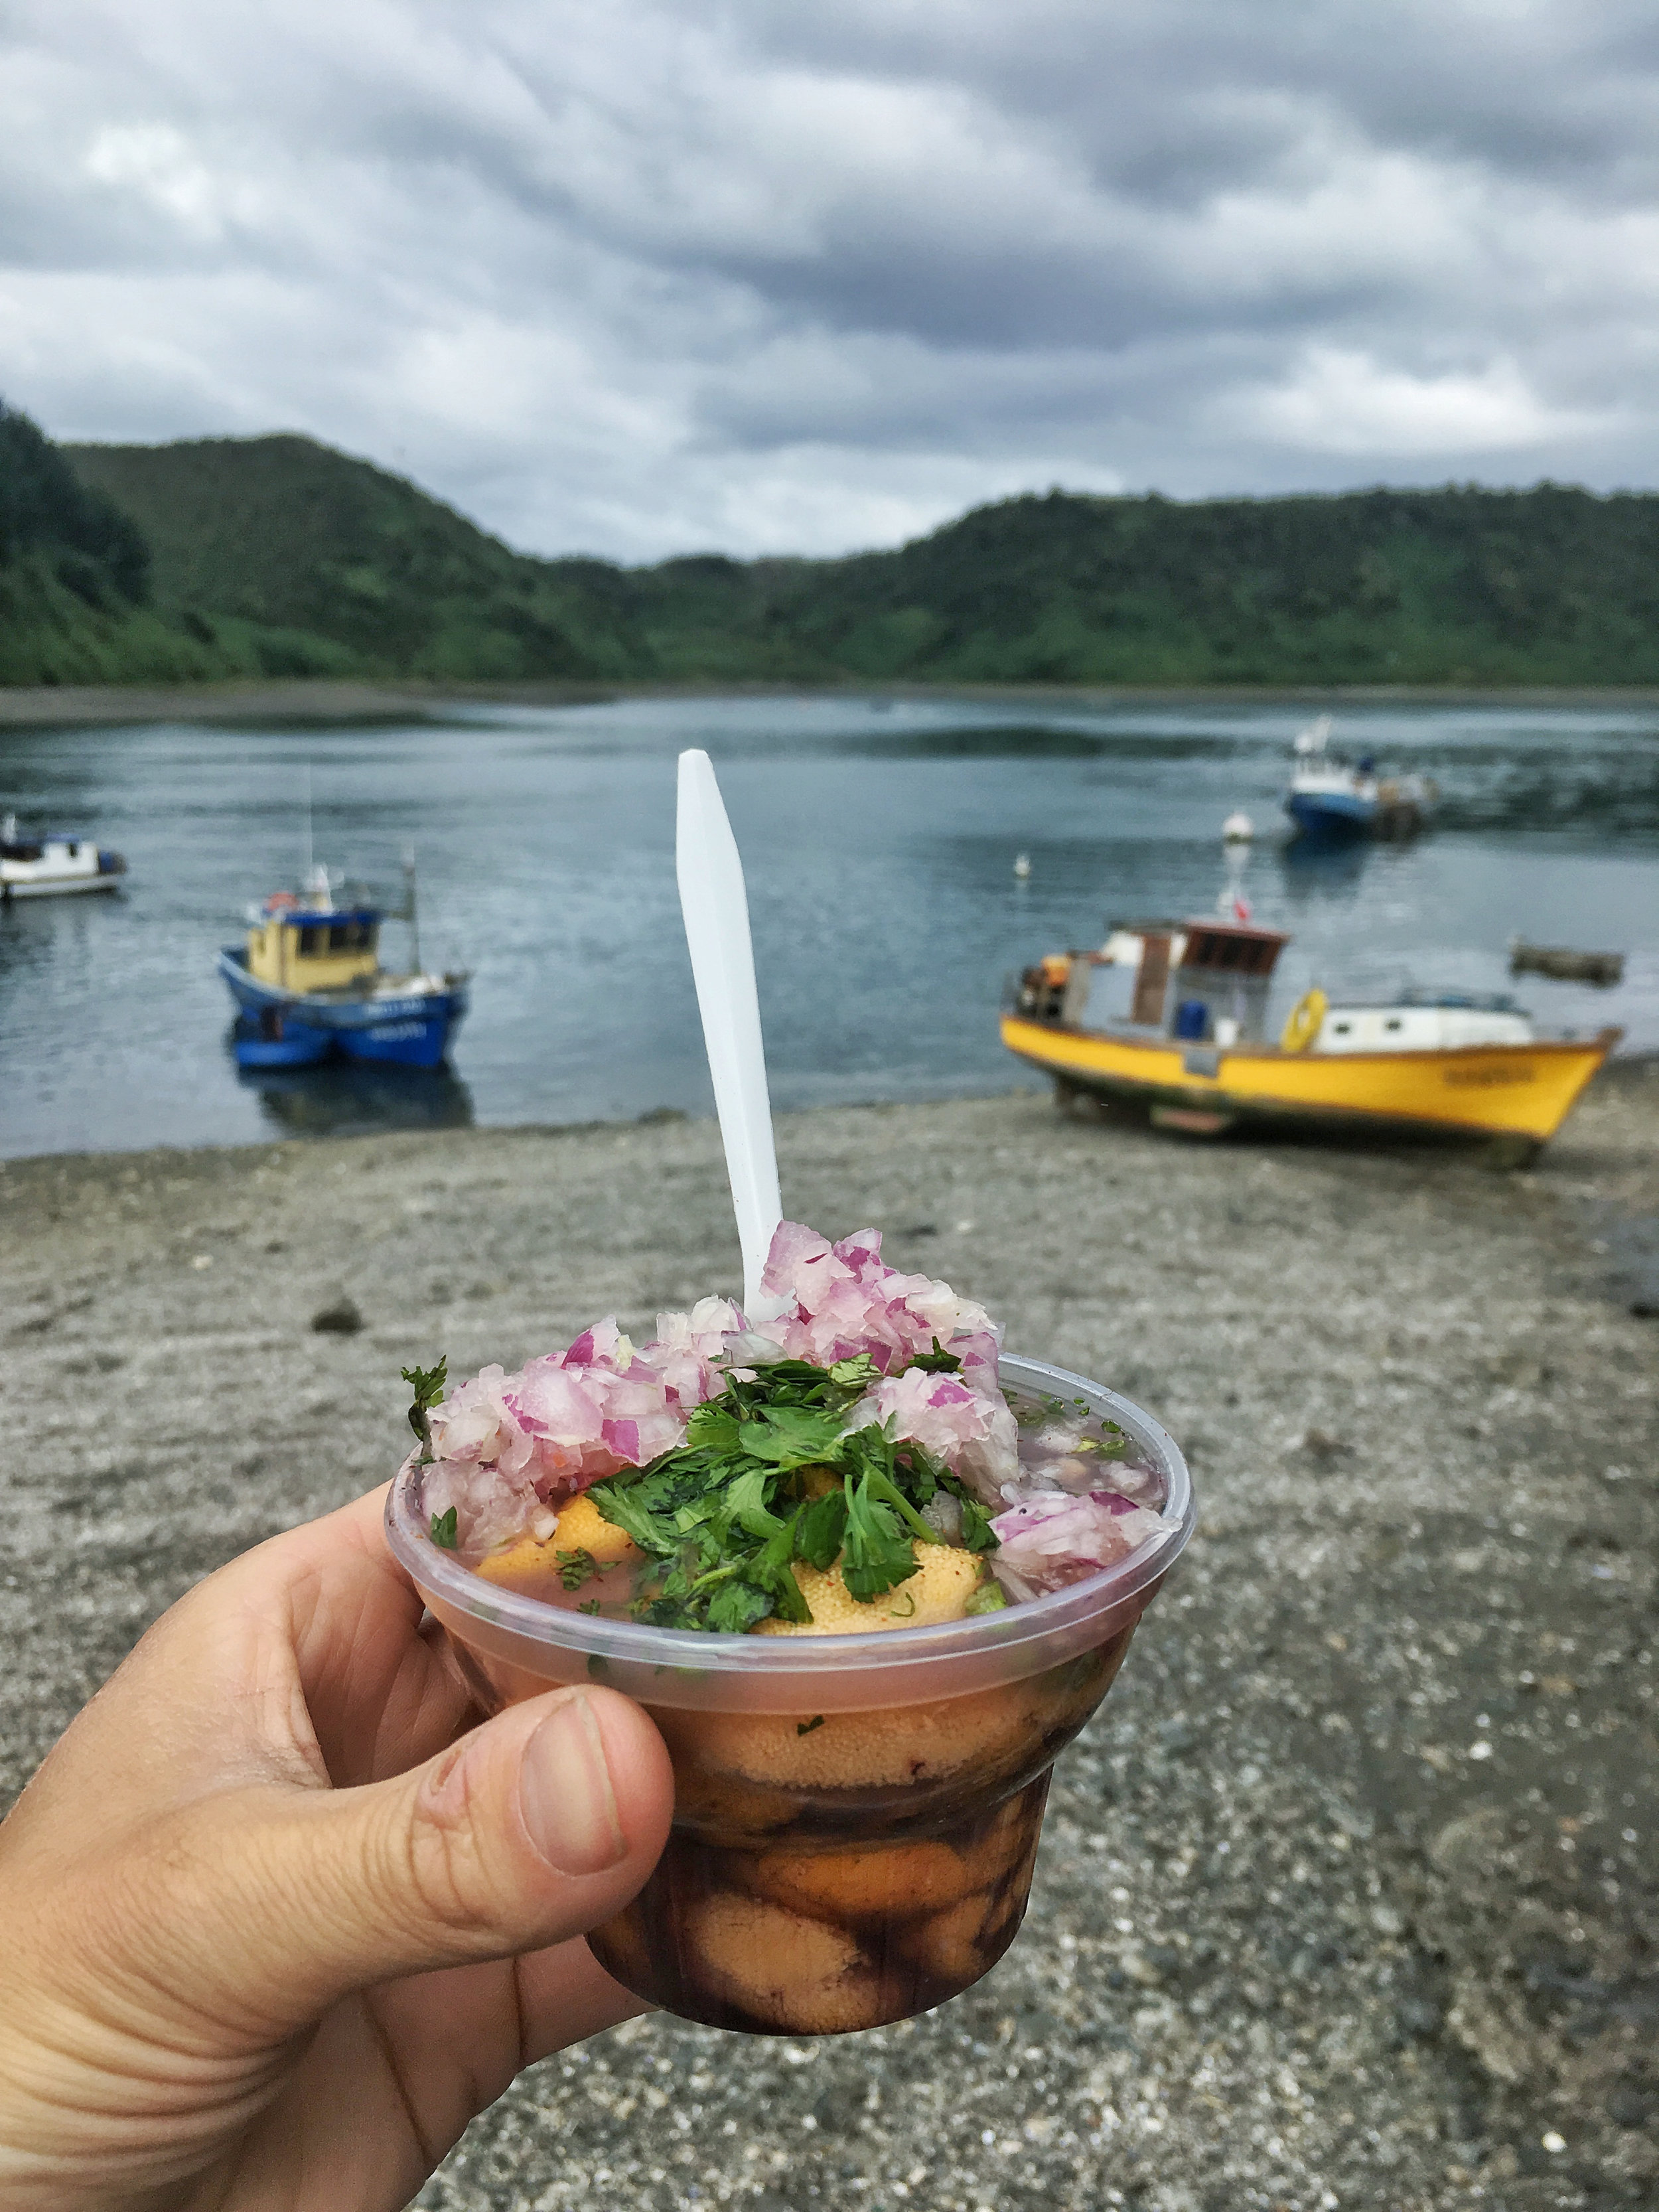 Urchin ceviche, oh so tasty